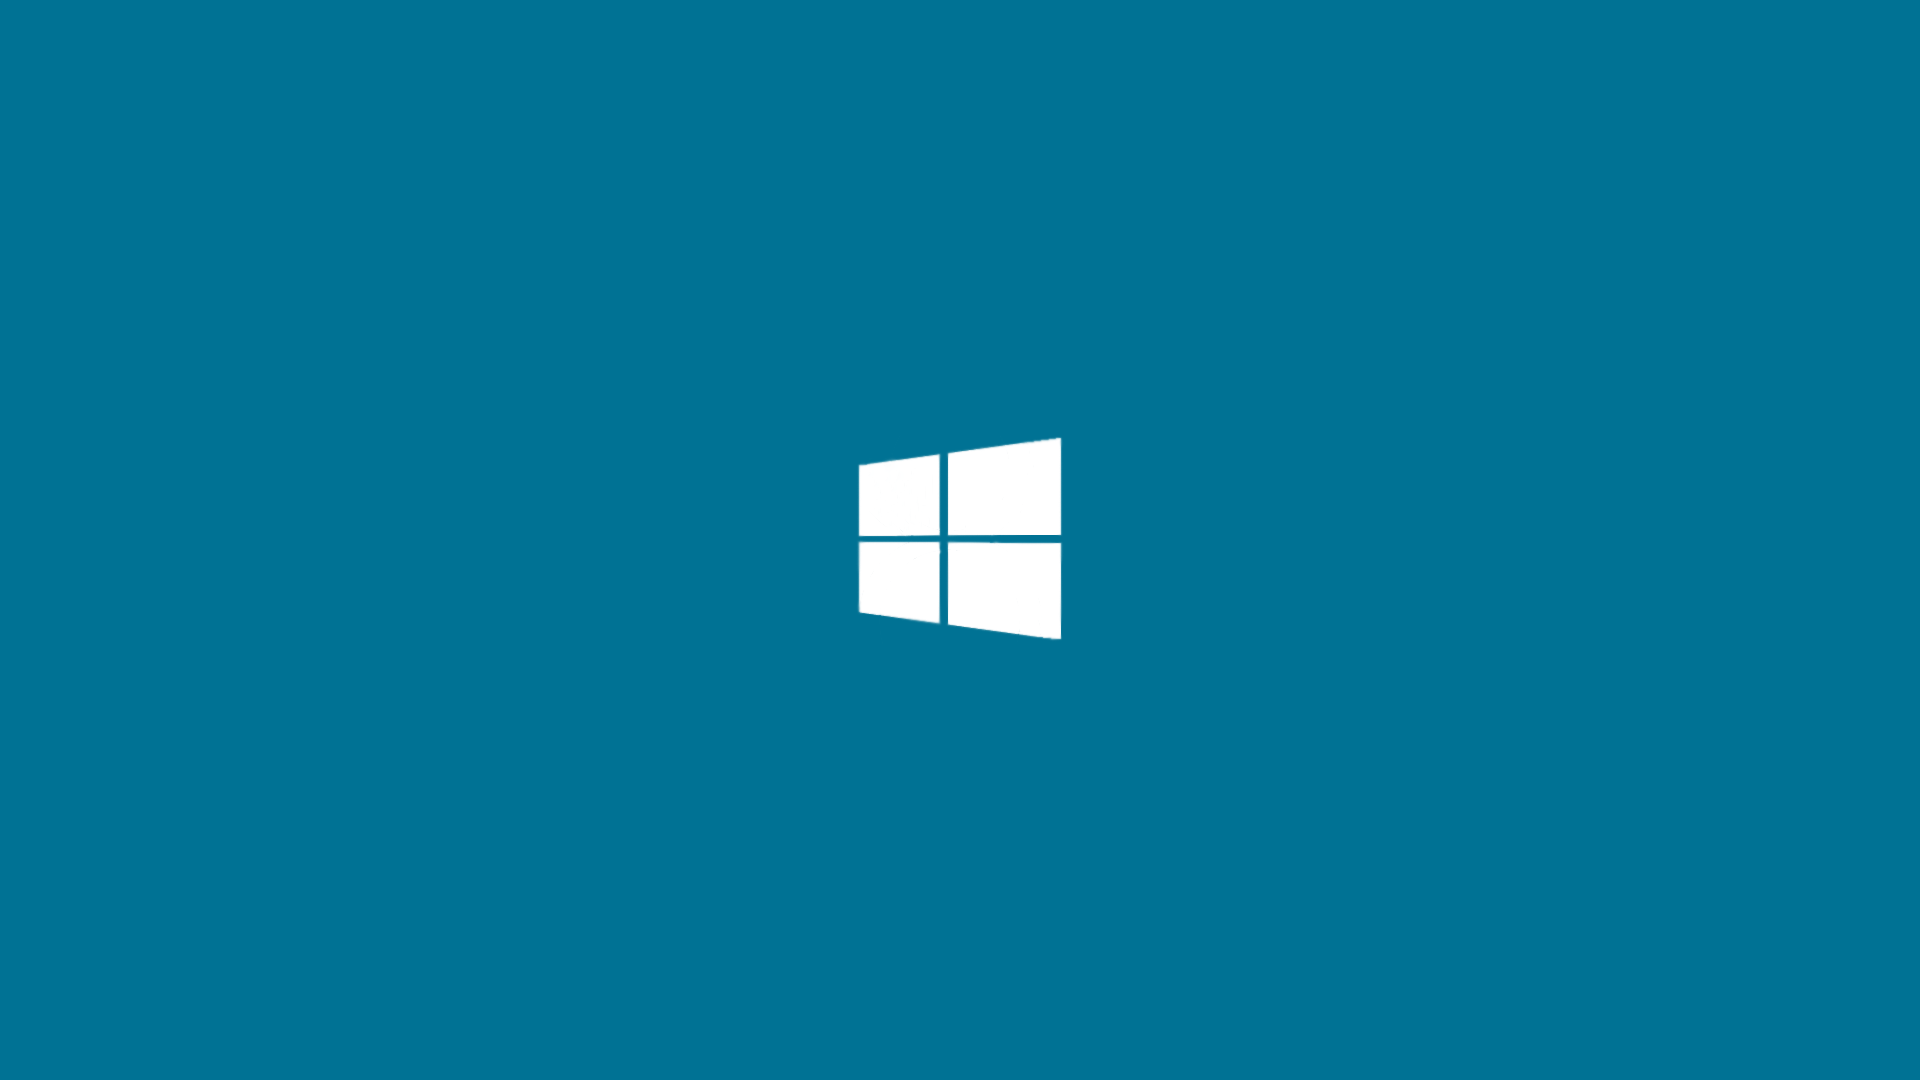 windows server wallpapers wallpaper | hd wallpapers | pinterest